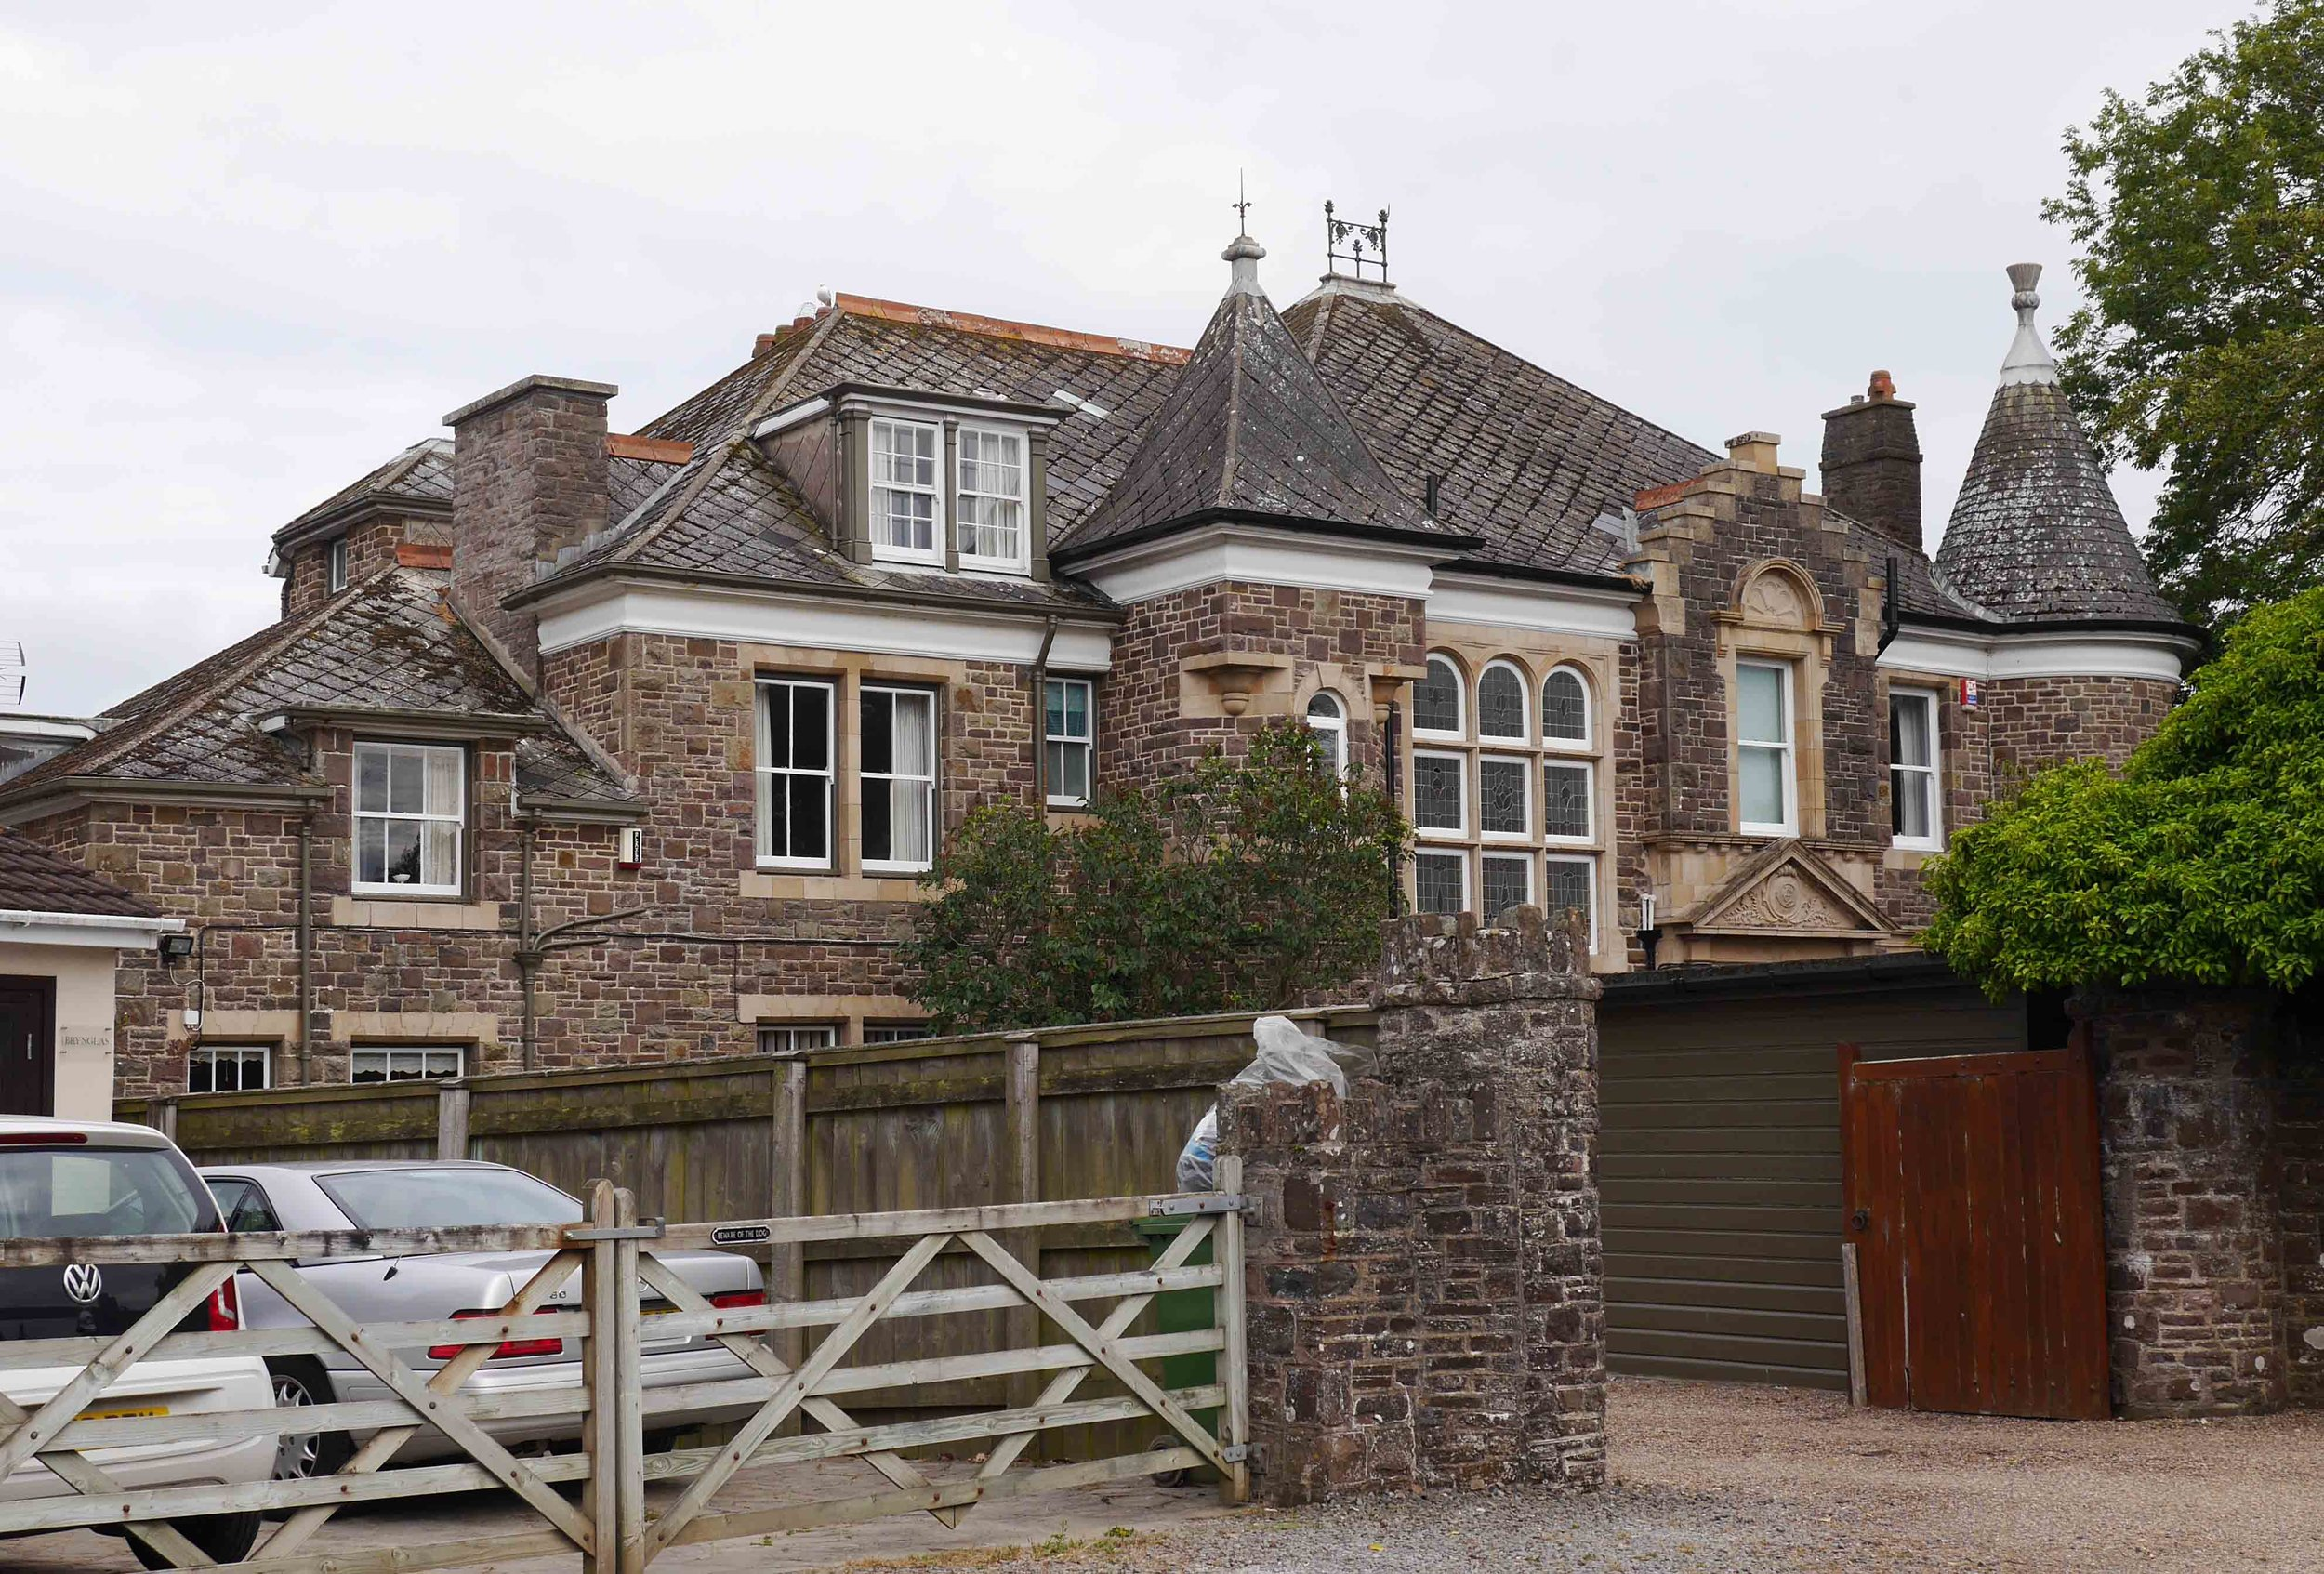 Cluden Bank, in Northam, Devon, where Edward lived with his father and two of his sisters after his return from New Zealand in 1910. The house was built in 1909 by his father and named after the ancestral Gordon home near Dumfries in Scotland. It was less than a mile from United Services College at Westward Ho!, where Edward and his two brothers went to school. My grandfather Captain Lawrance Wilfred Gibbins remembered spending time at this house as a boy with his Gordon relatives before and during the First World War.